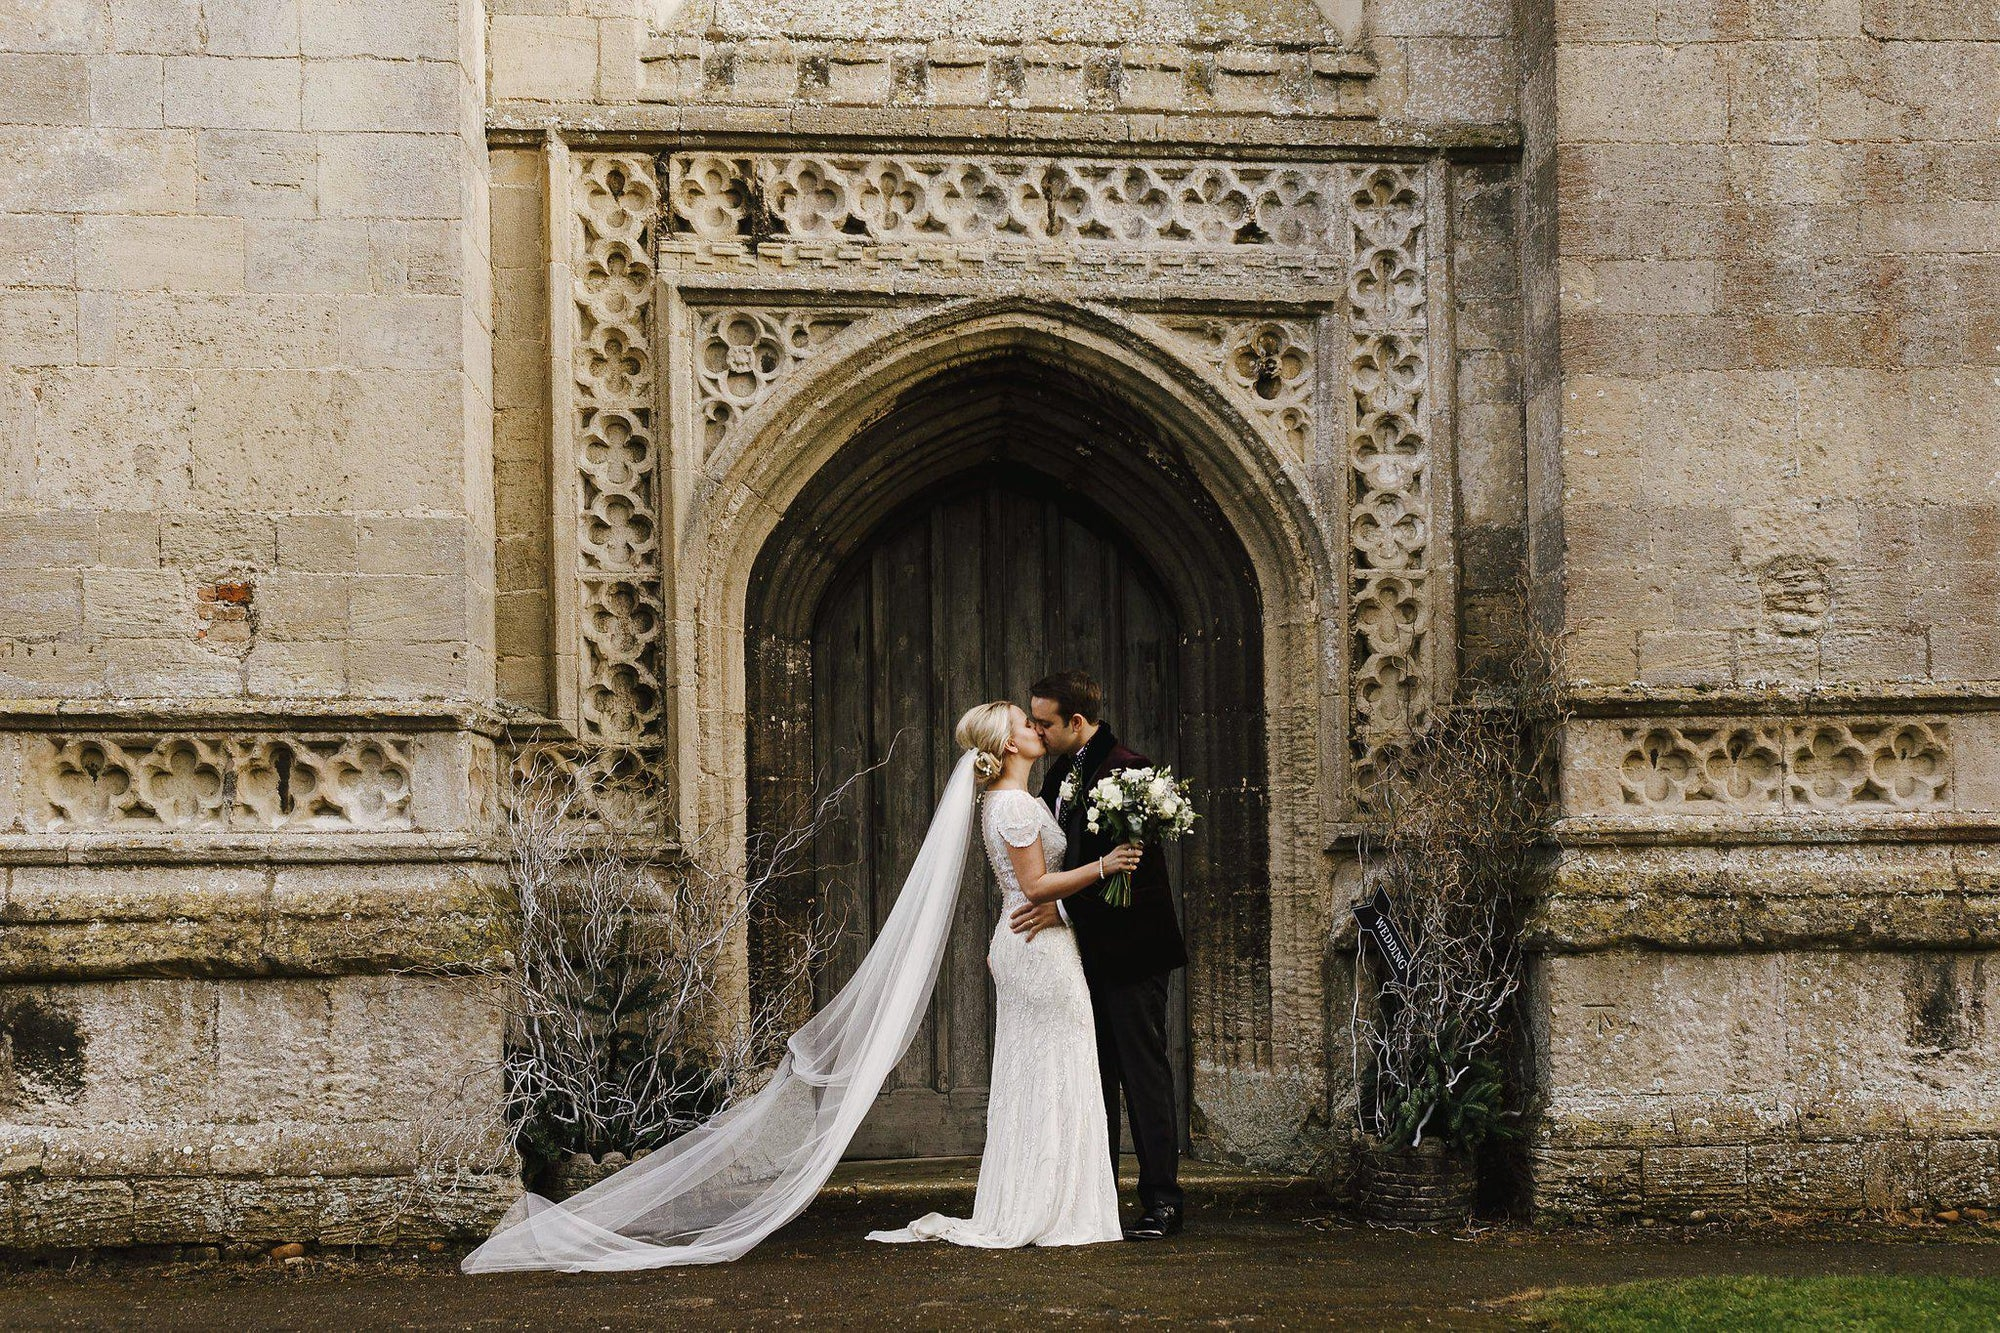 Real Bride | Jenny Packham Nashville Dress | Single Tier Silk Style Veil